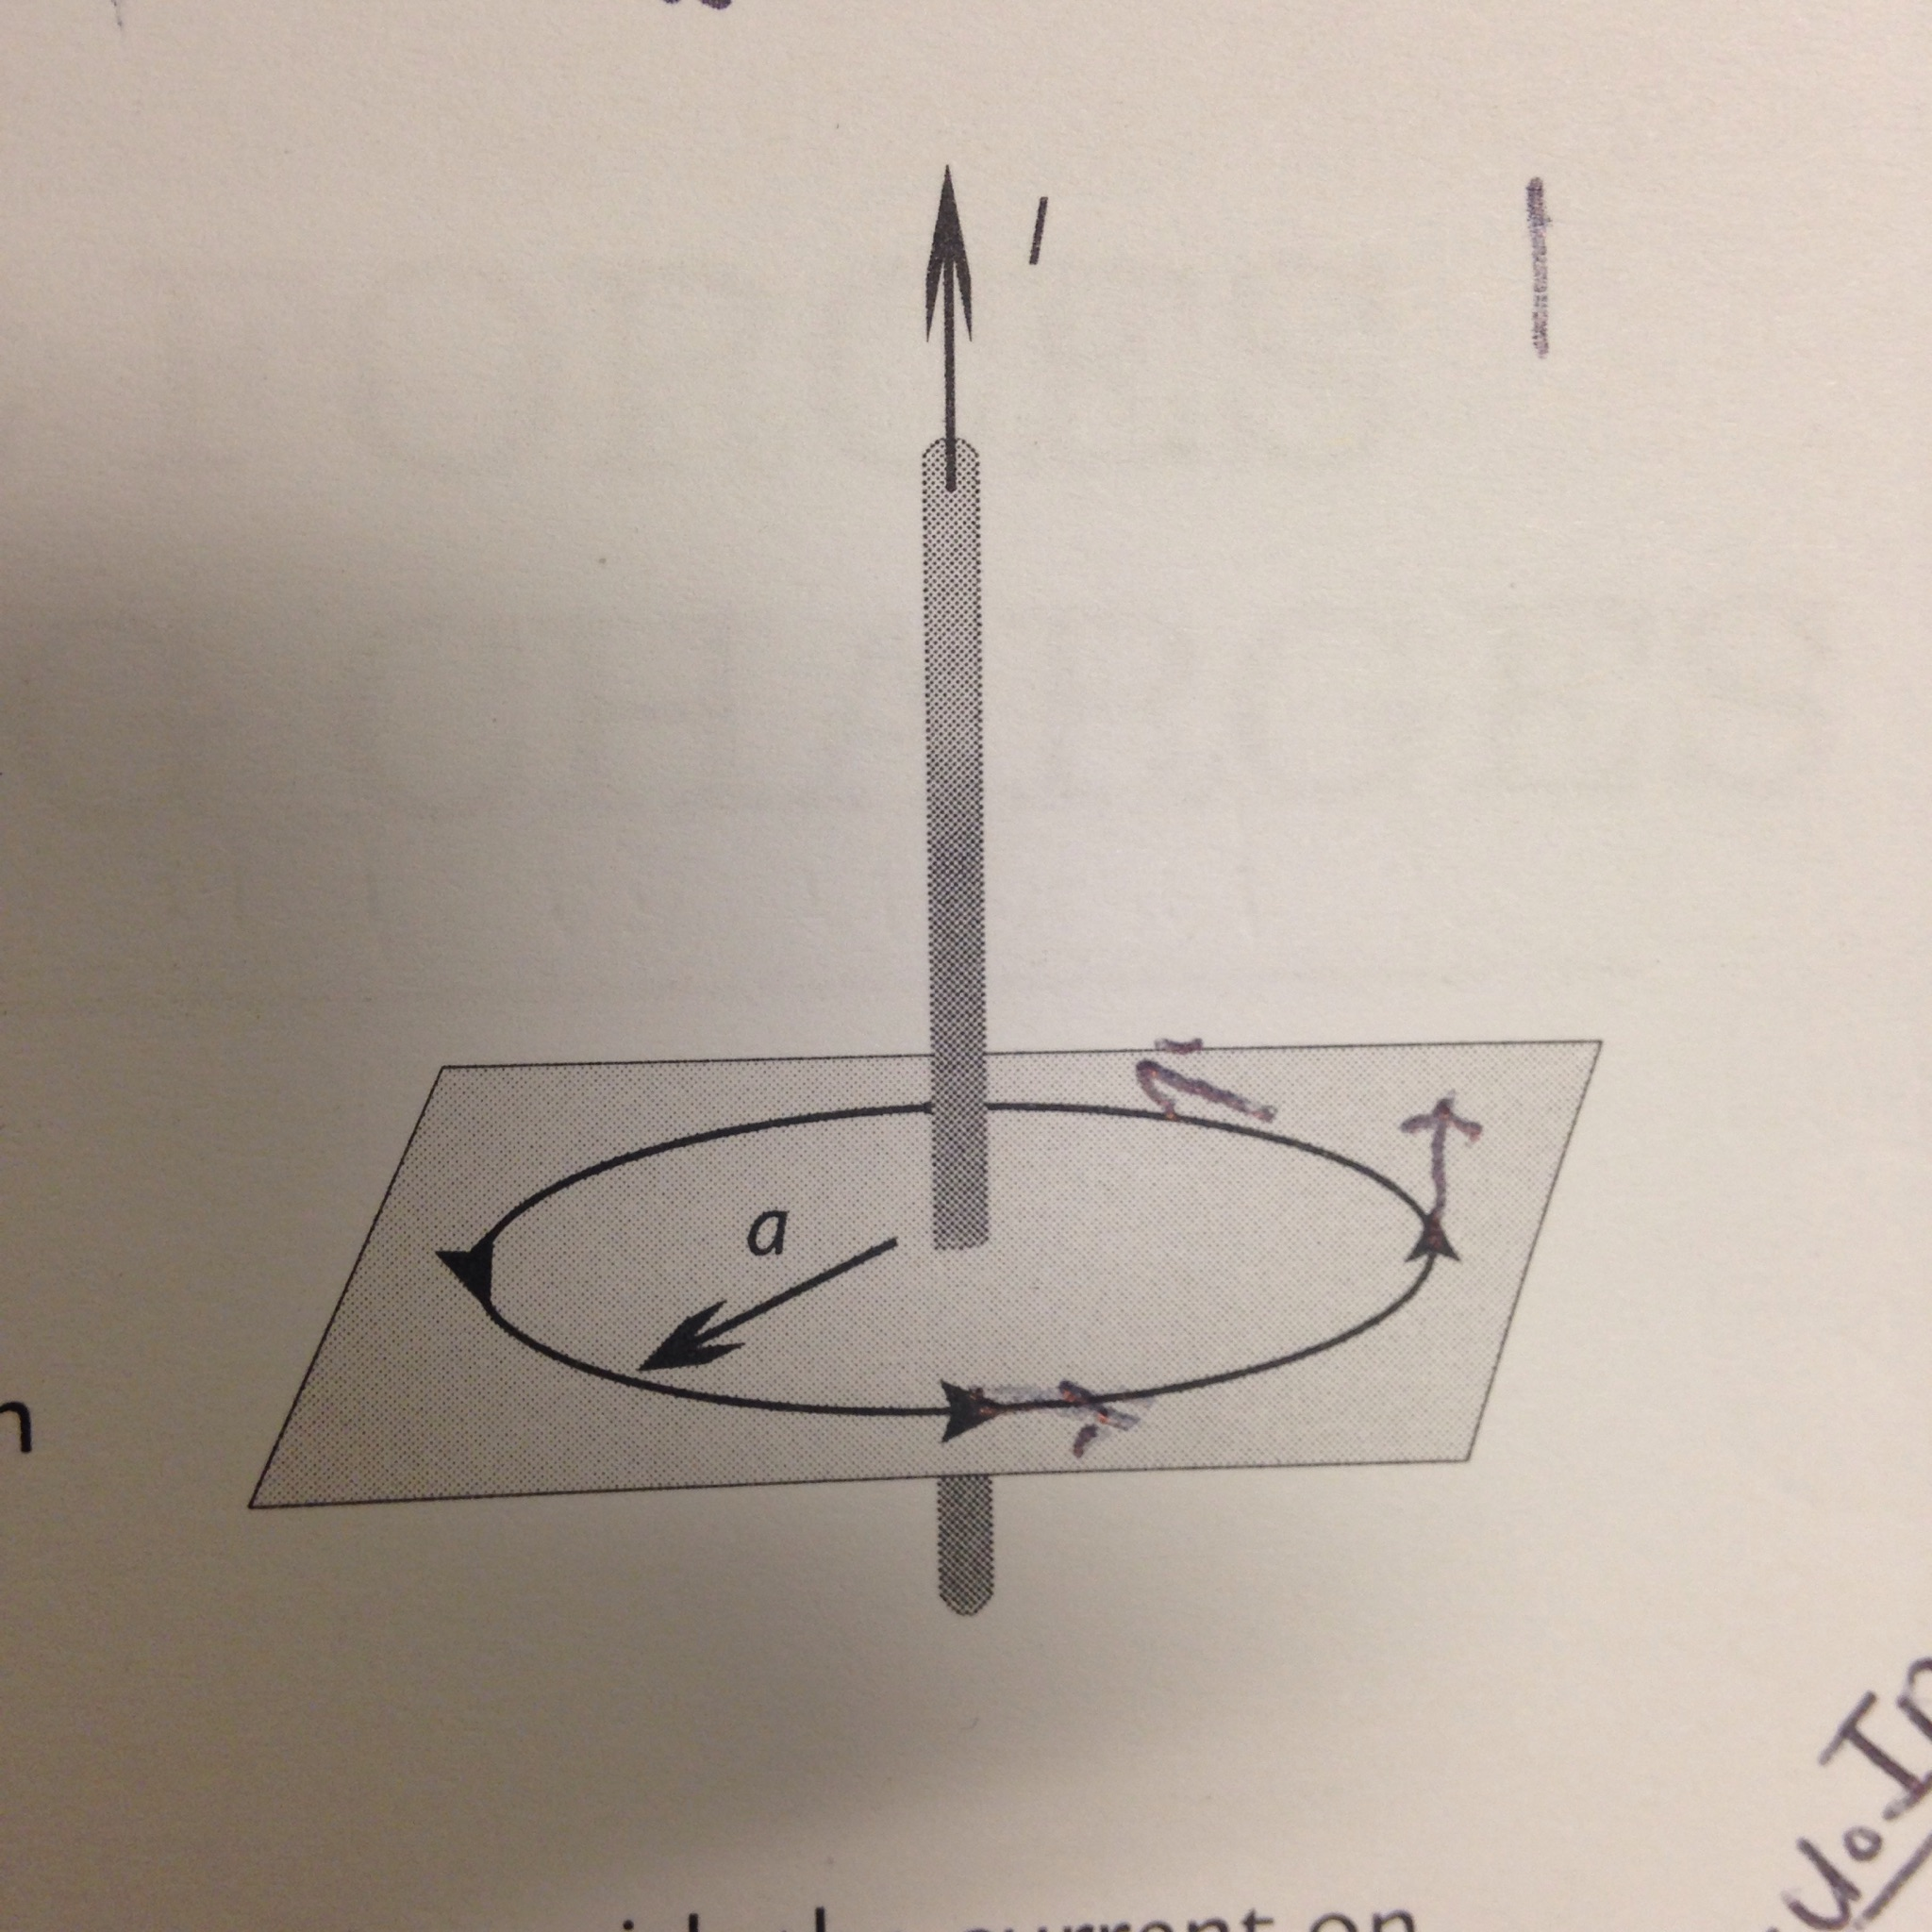 Solved imagine that you had placed a compass due east of expert answer ccuart Images